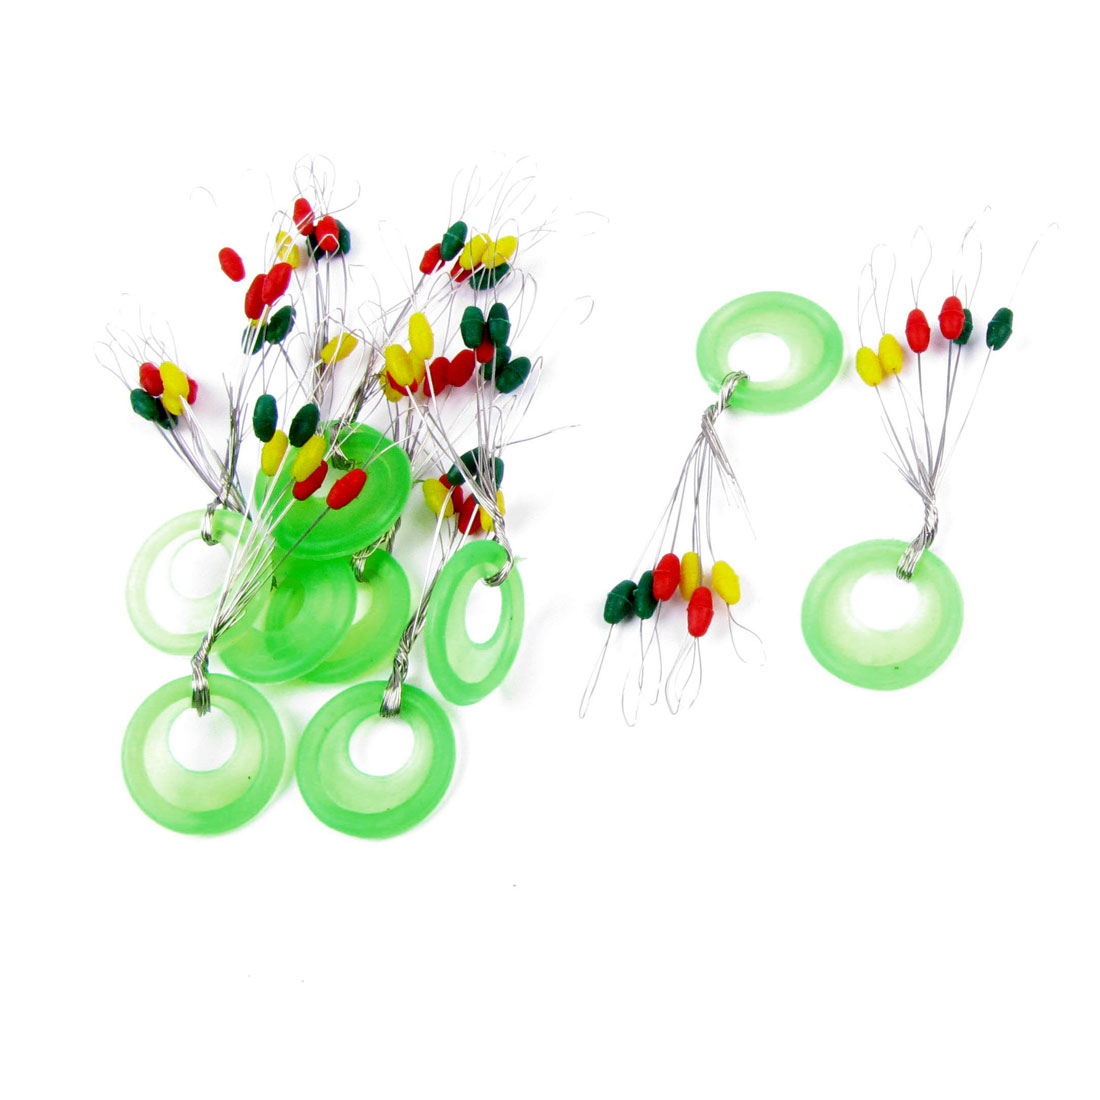 10 x Colorful Round Rubber Stopper 6 in 1 Fishing Floater Bobber Sinker Size S 0.5g Per Piece